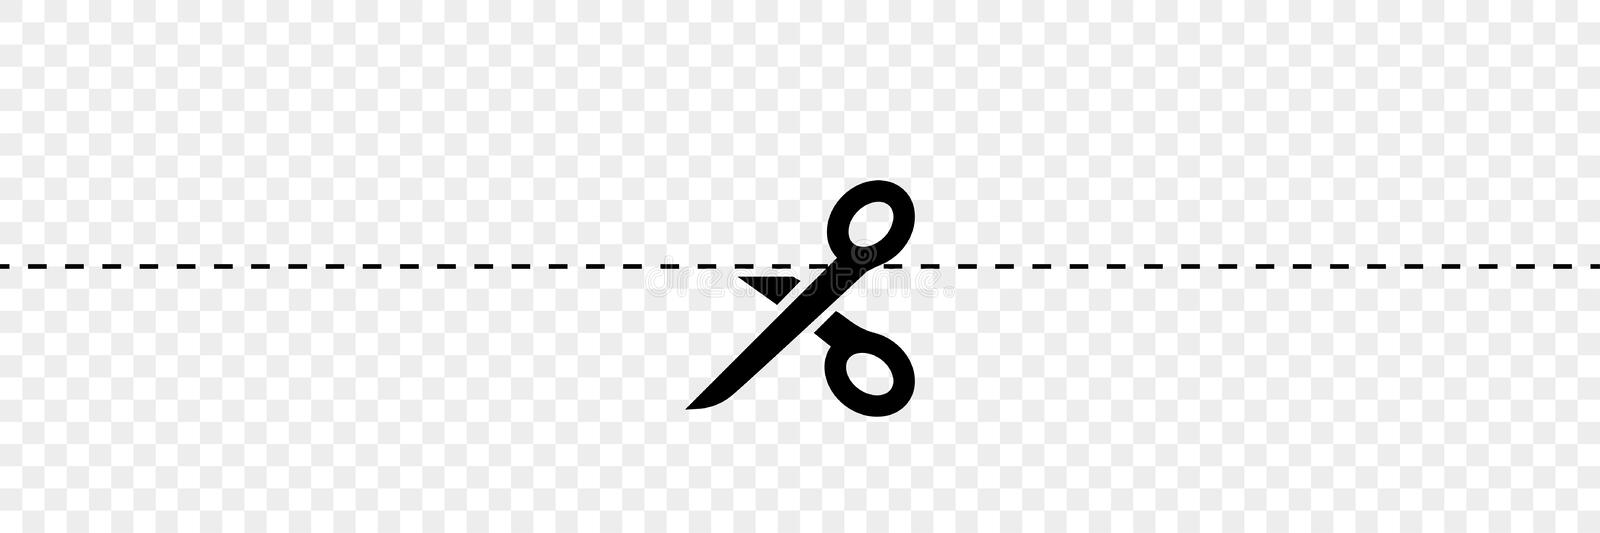 Black scissors vectors with cut lines. On transparent background. Vector icon for web design vector illustration